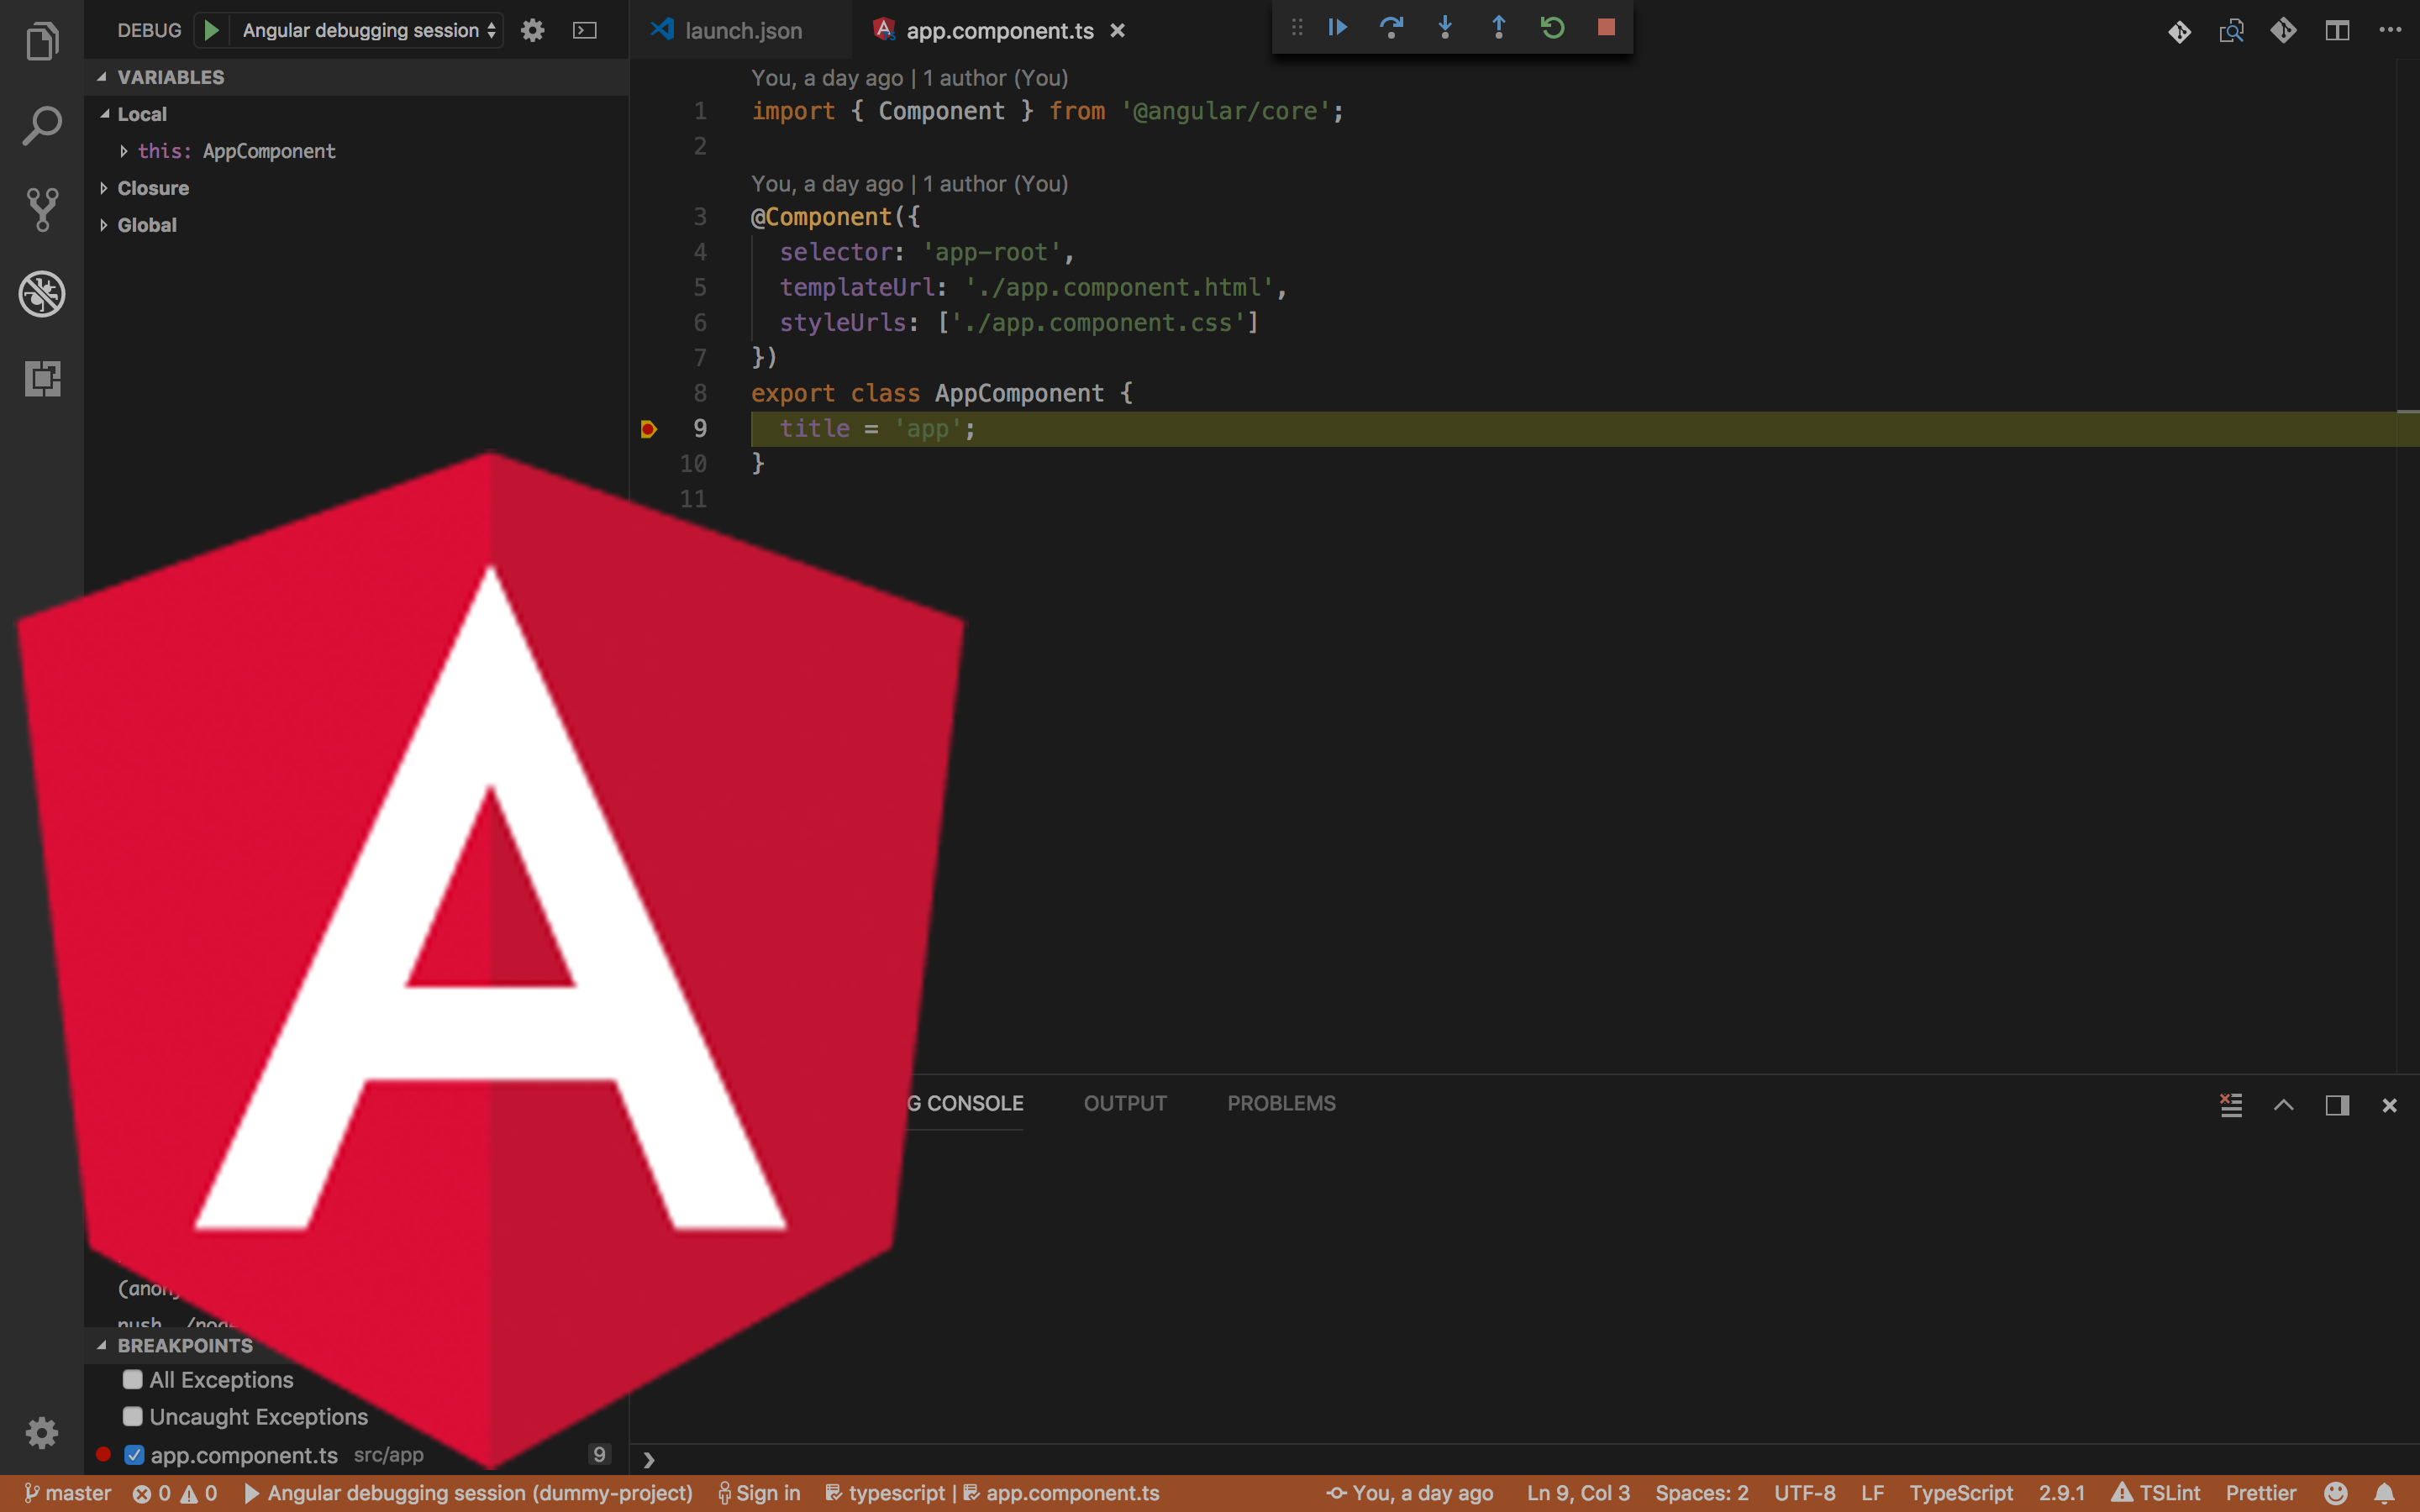 Simple instruction how to configure debugger for Angular in